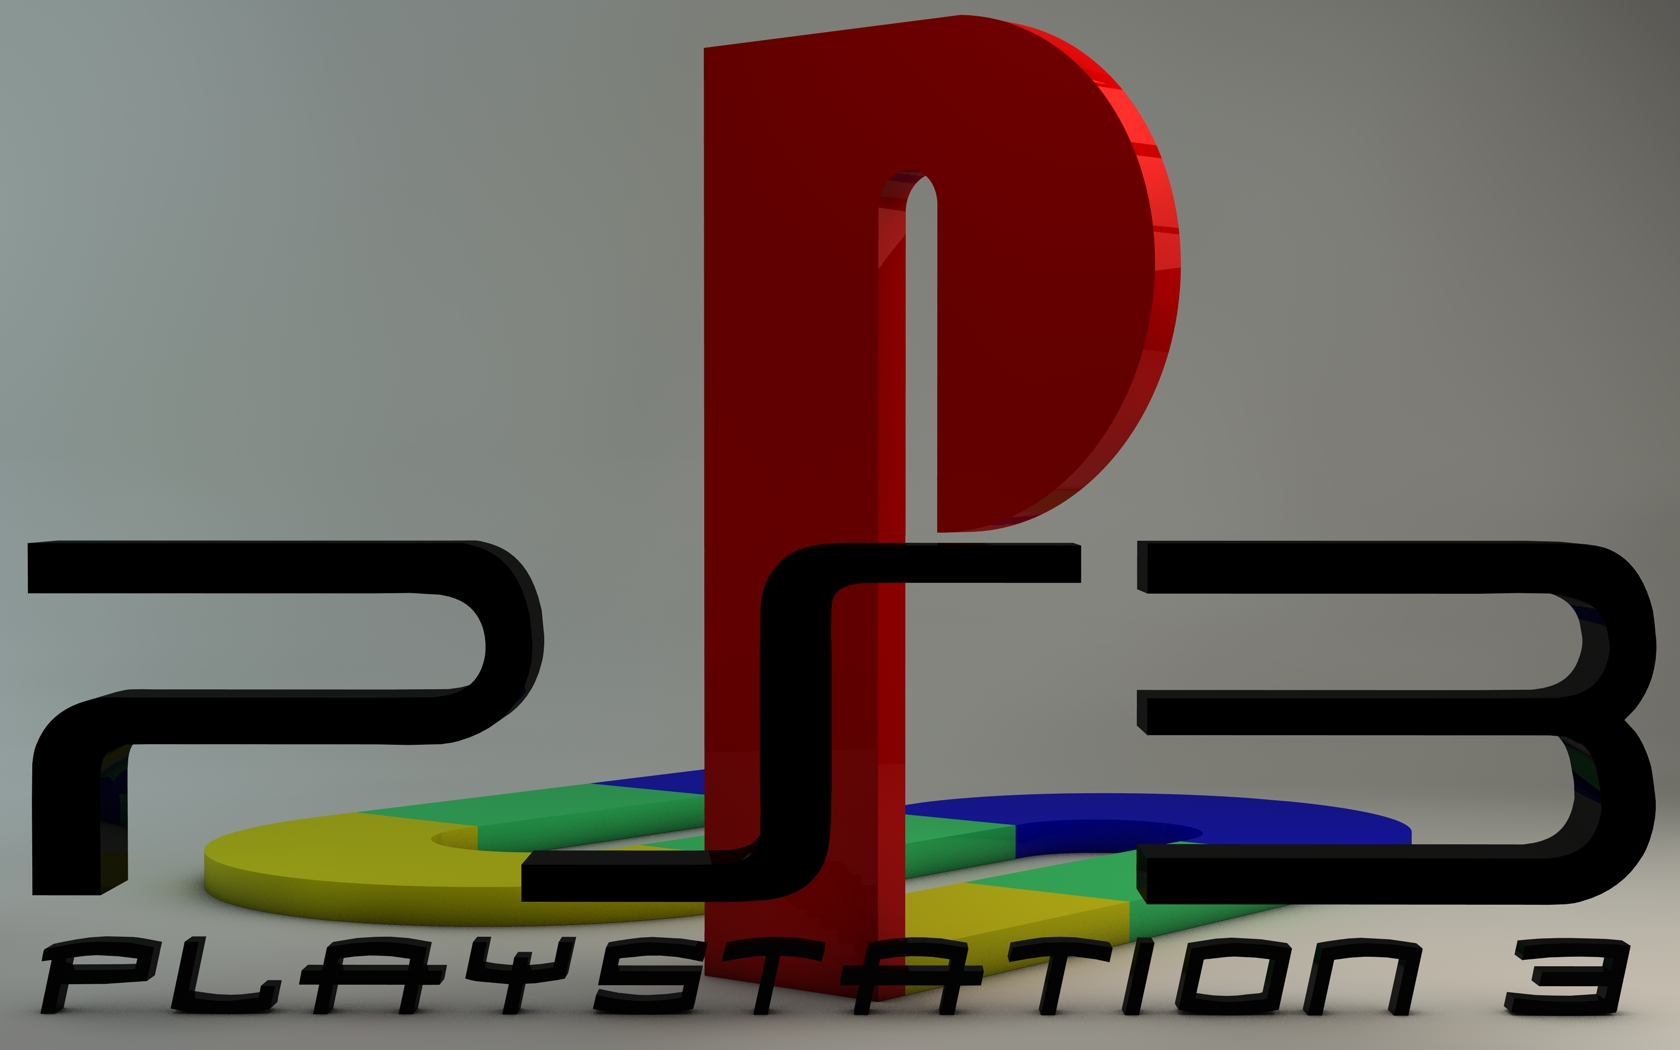 PlayStation 3 Logo by Dracu-Teufel666 on DeviantArt